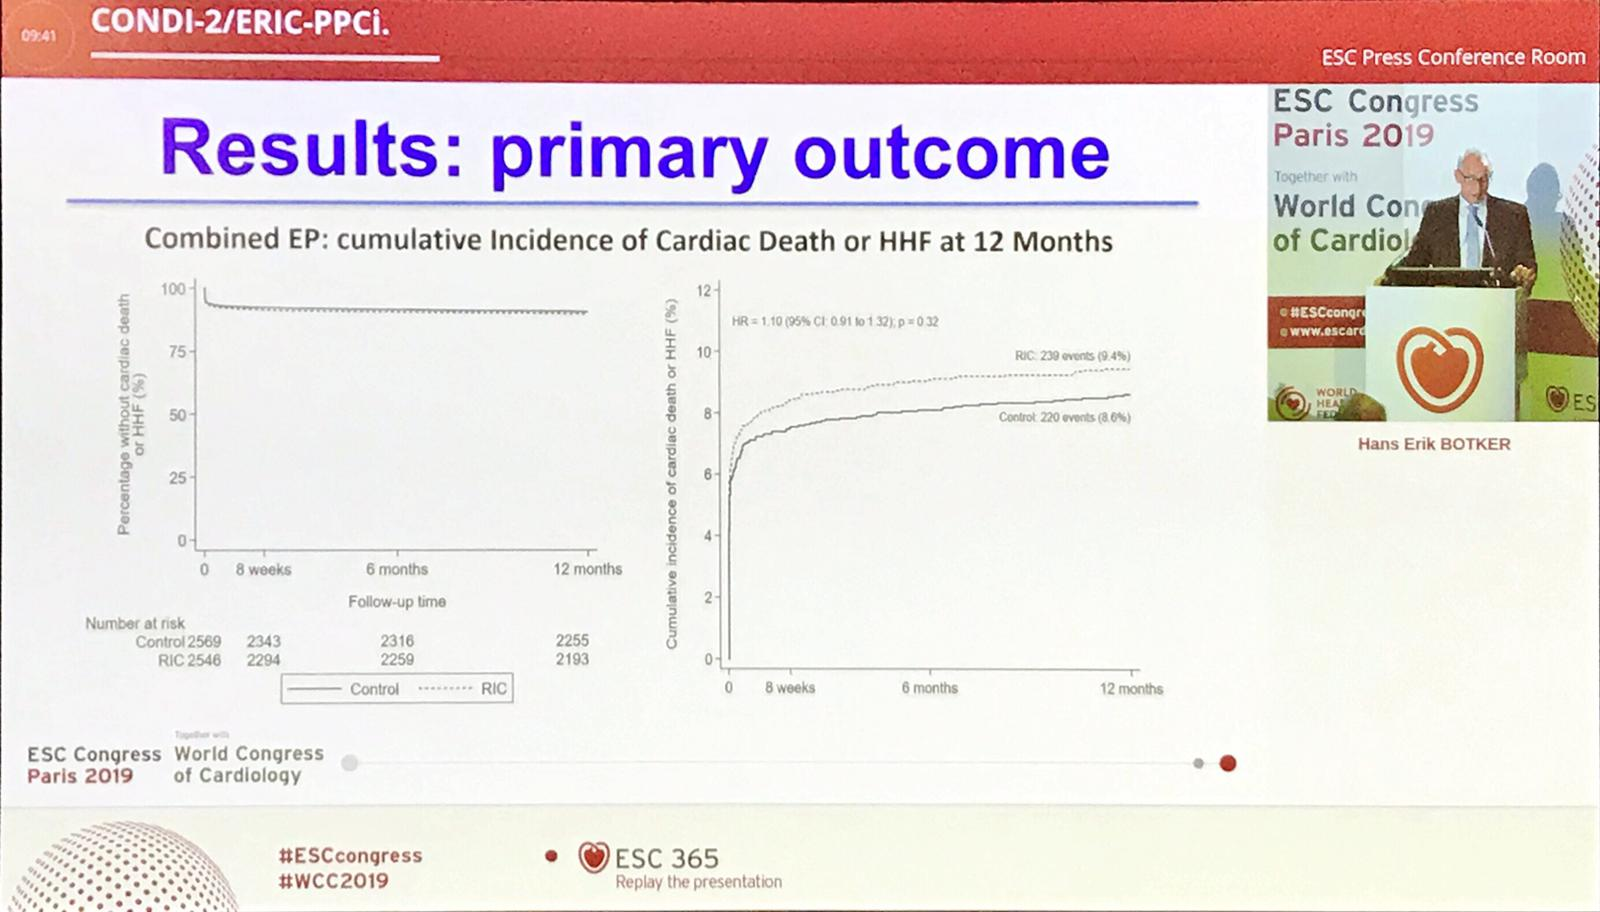 A slide showing the primary endpoint of the Condi-2/Eric-PPCI study